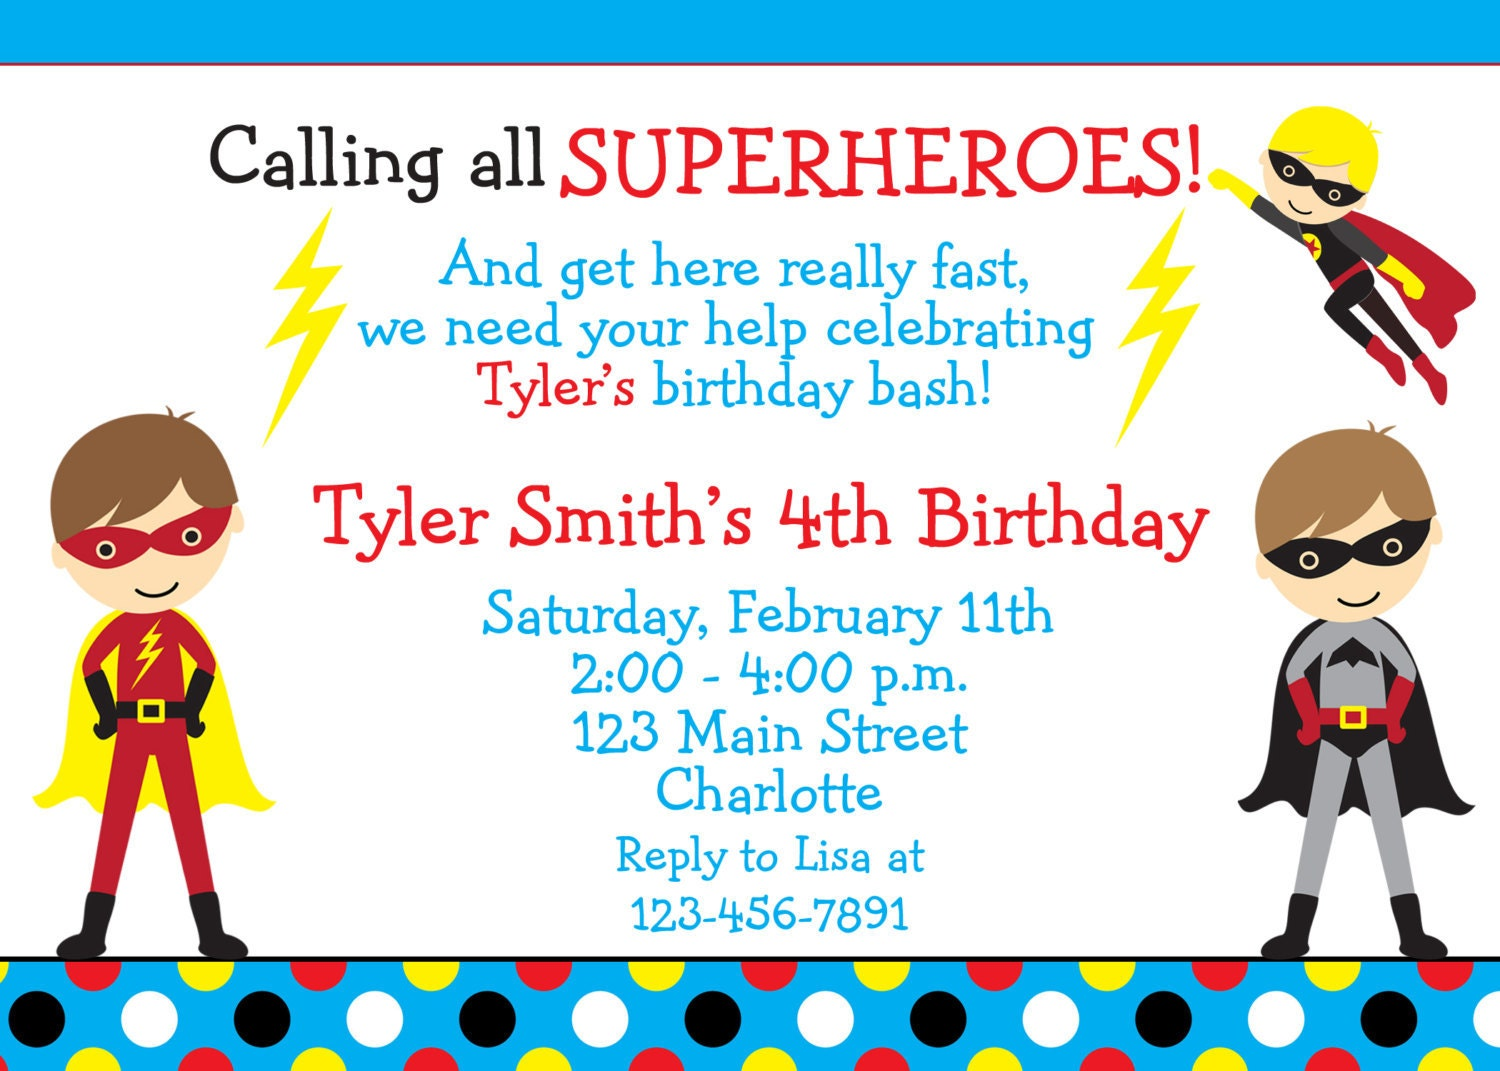 Butterfly Birthday Invitation was awesome invitations layout